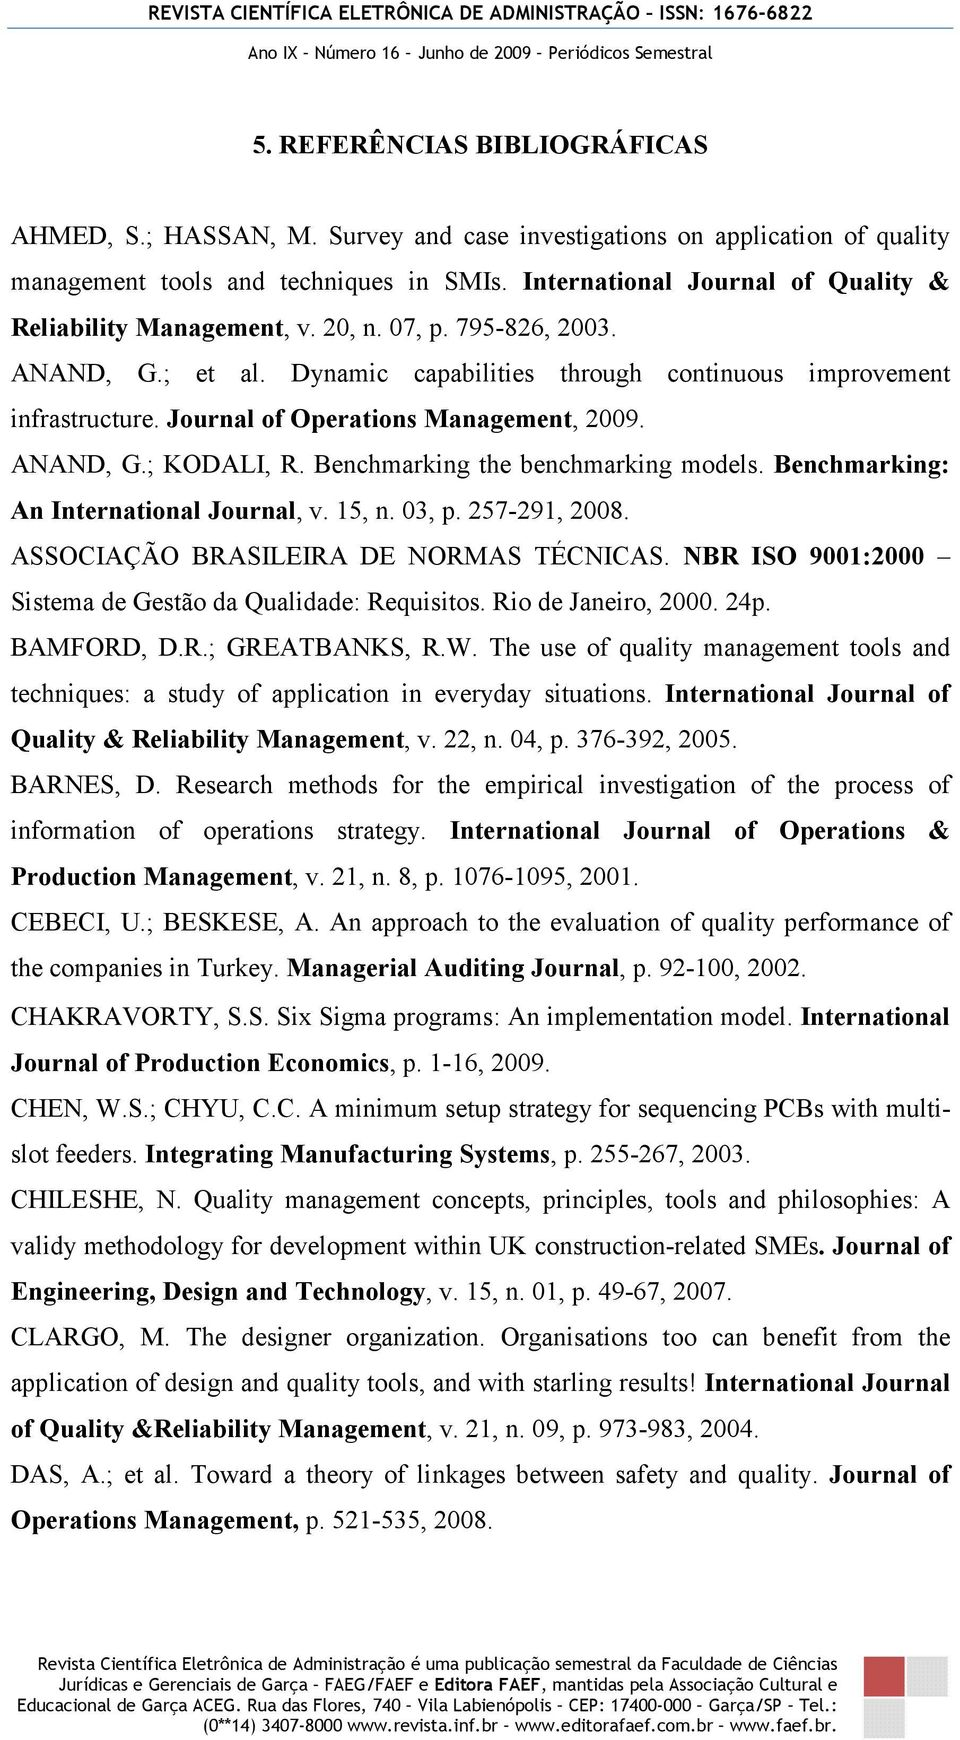 Journal of Operations Management, 2009. ANAND, G.; KODALI, R. Benchmarking the benchmarking models. Benchmarking: An International Journal, v. 15, n. 03, p. 257-291, 2008.